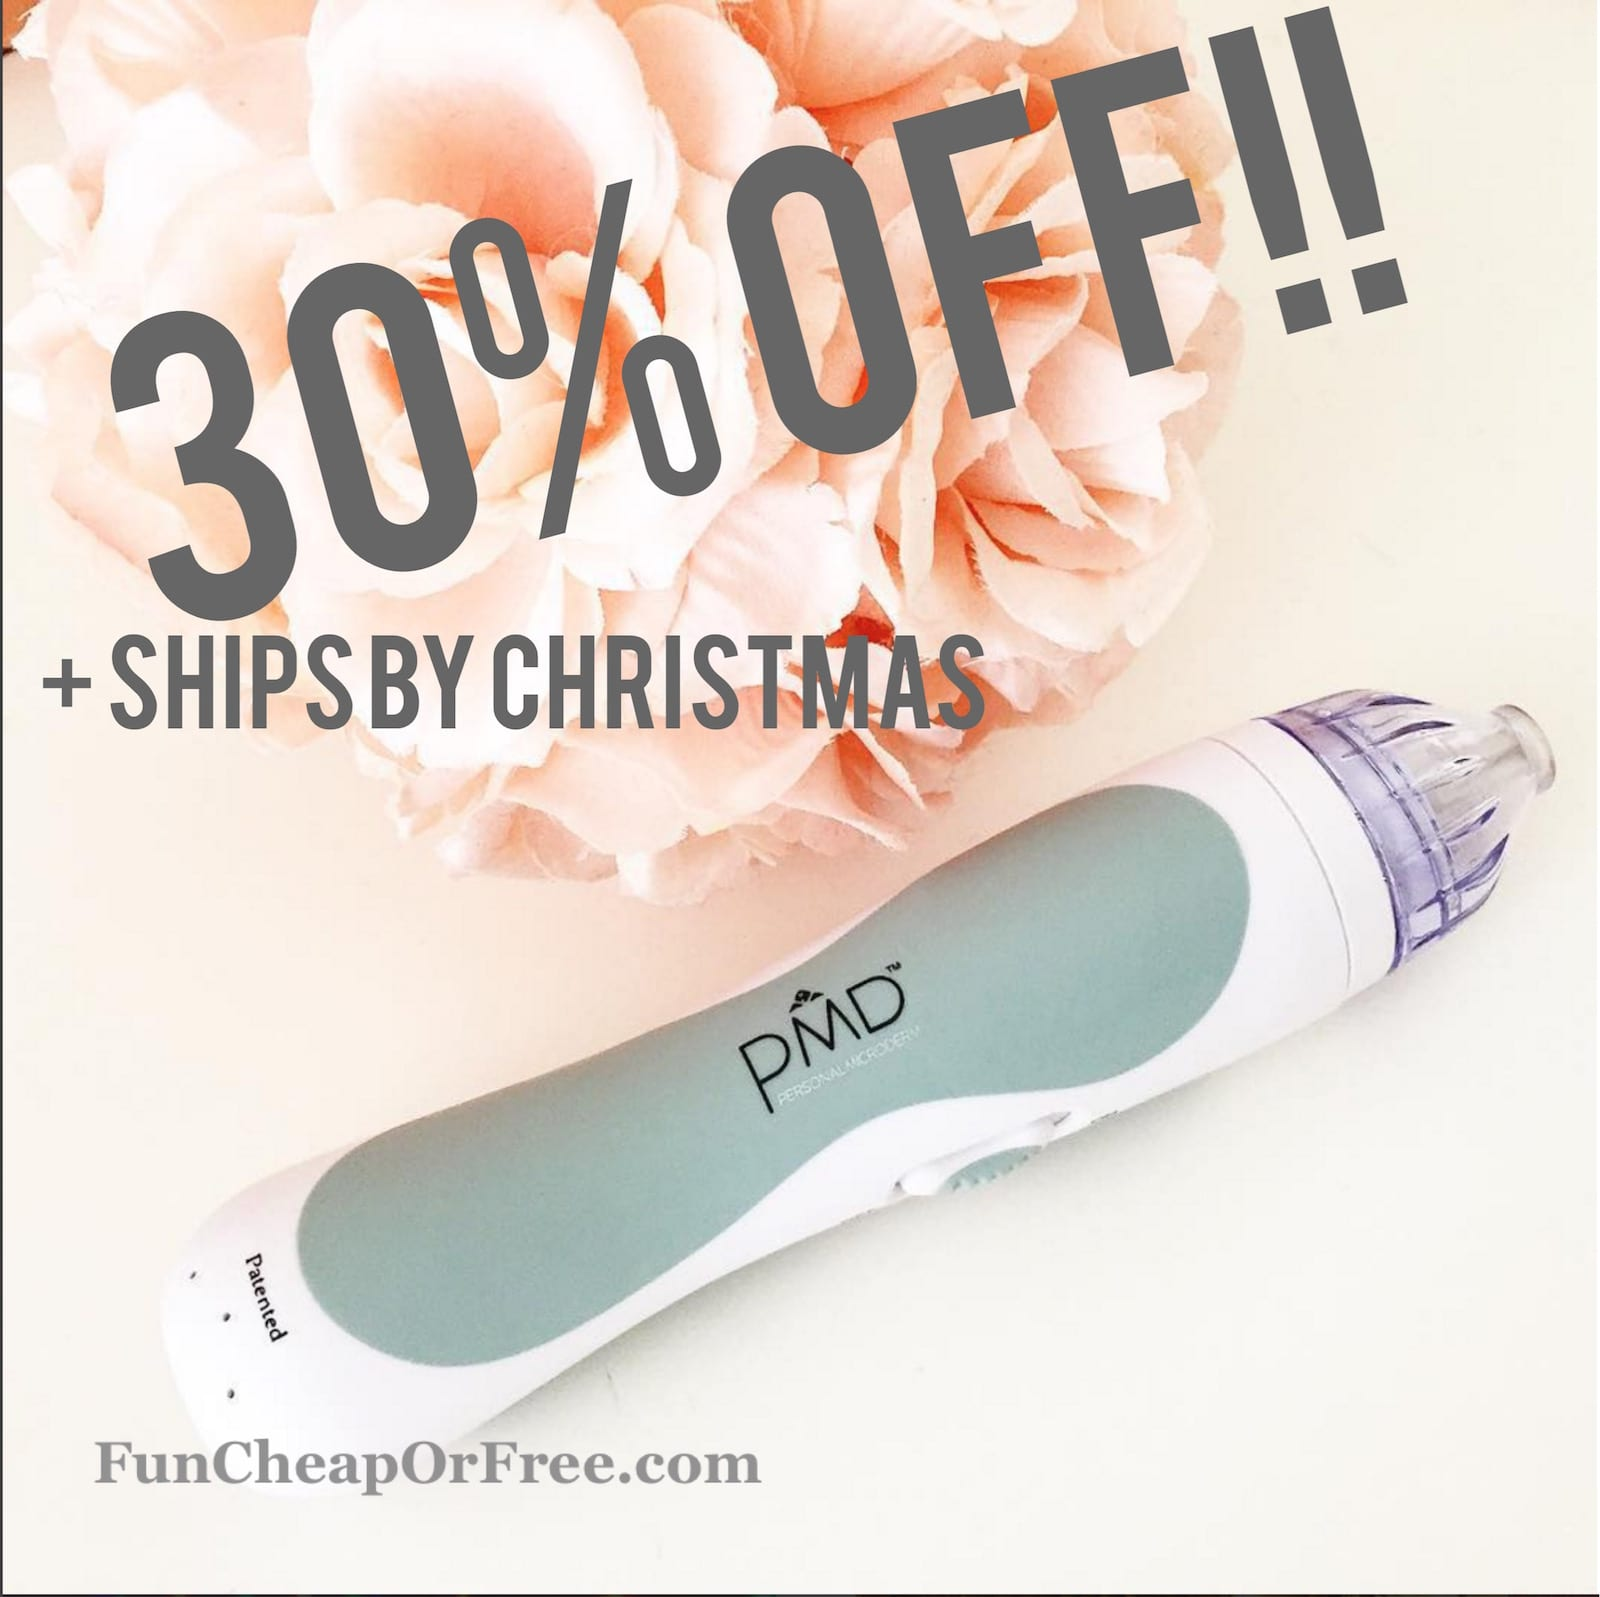 30% off PMD discount!!!! AHH! RUN for this deal!!